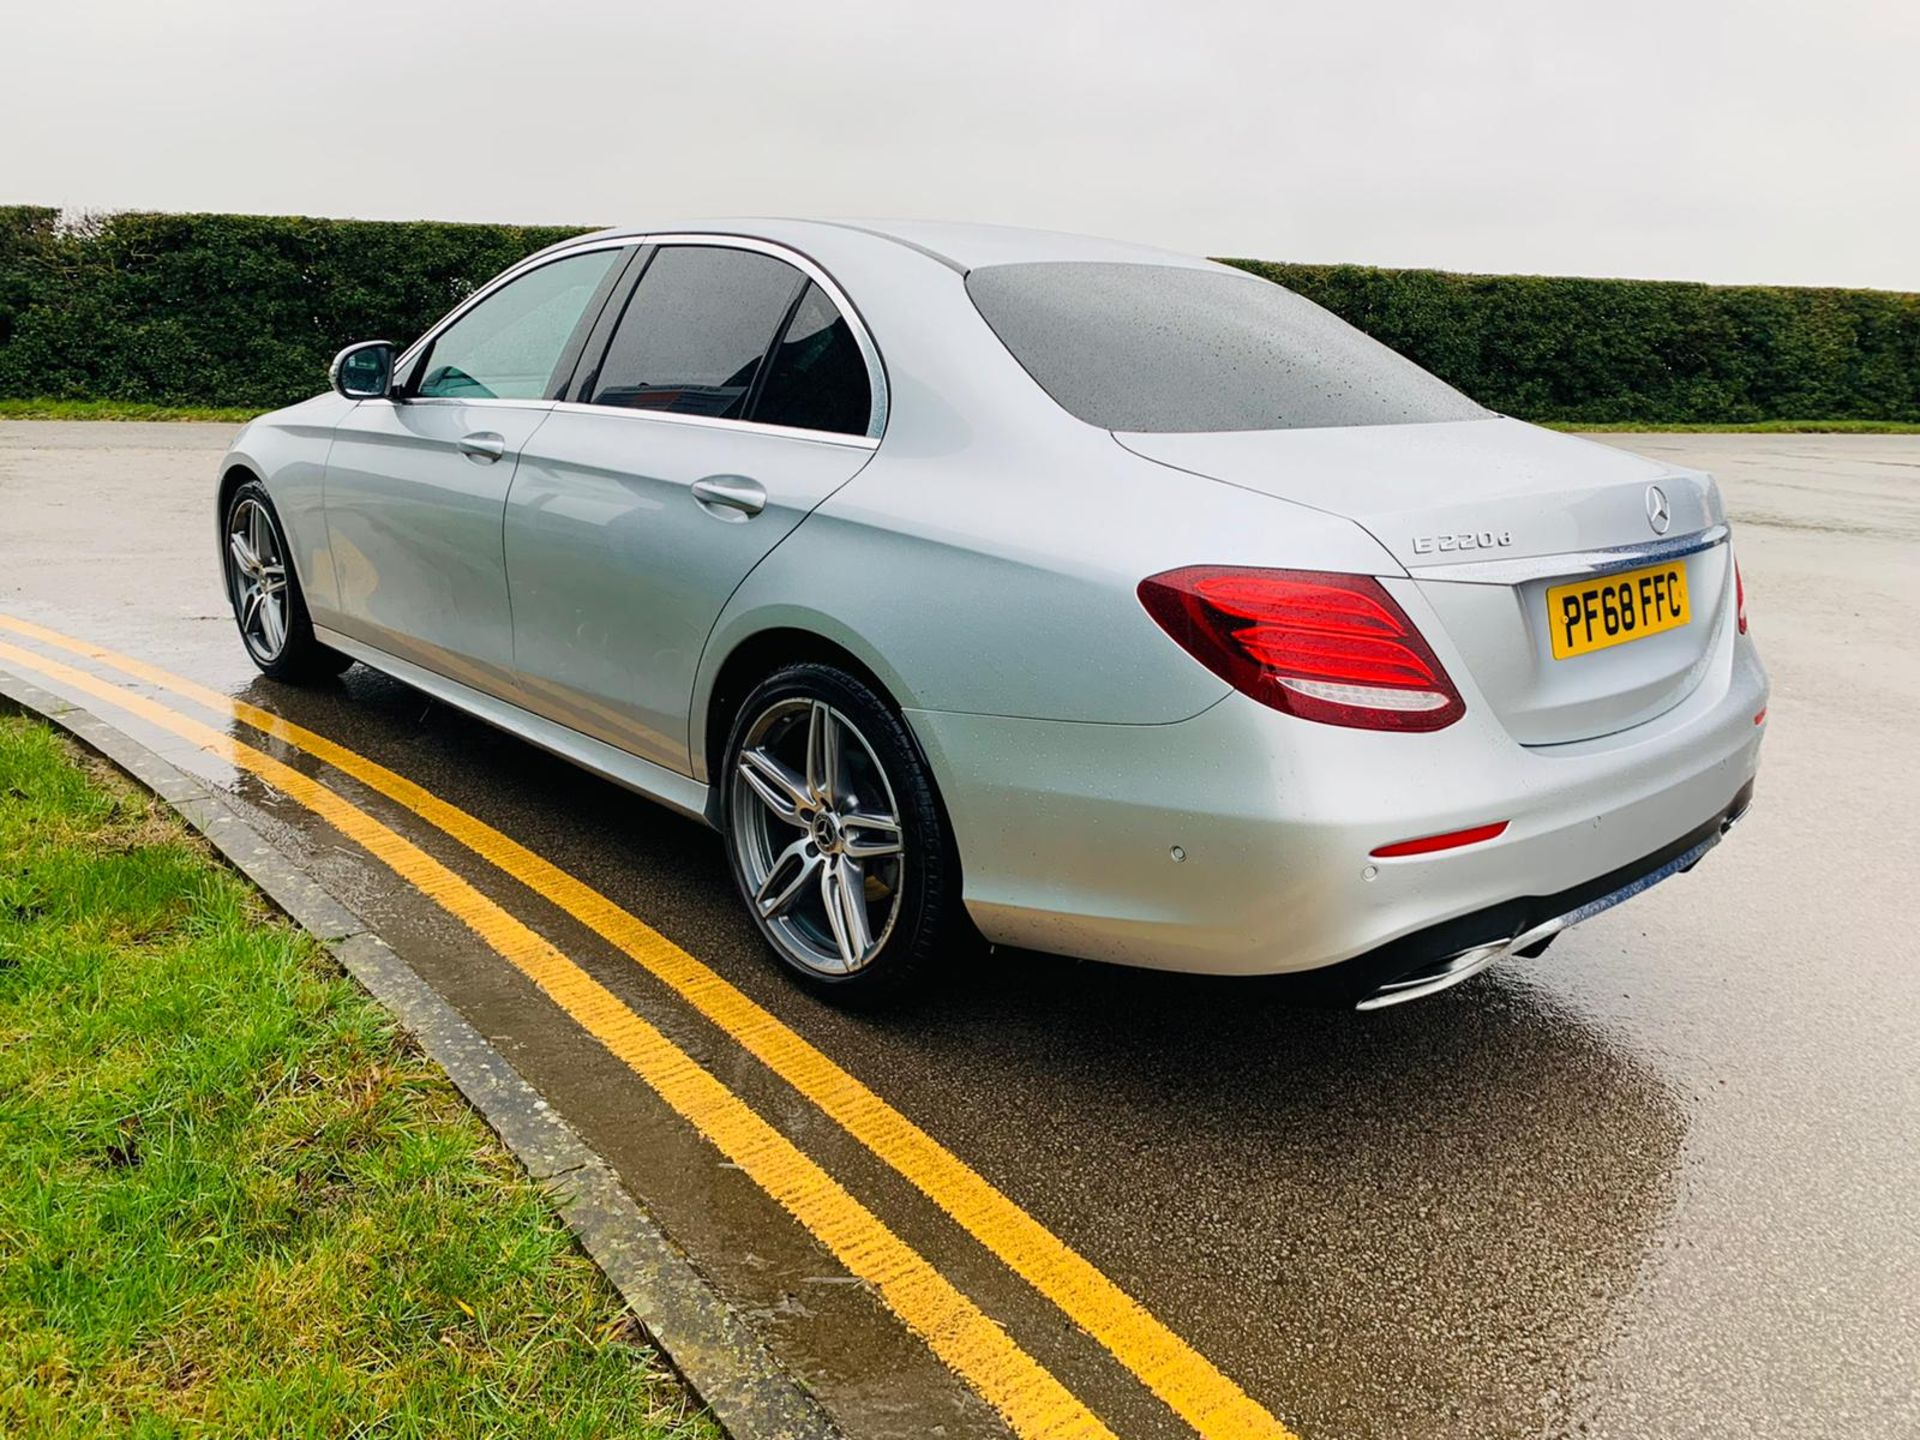 (Reserve Met)Mercedes E220d AMG Line Auto 9G Tronic - 2019 Reg - Reversing Cam - 1 Owner From New - Image 2 of 30